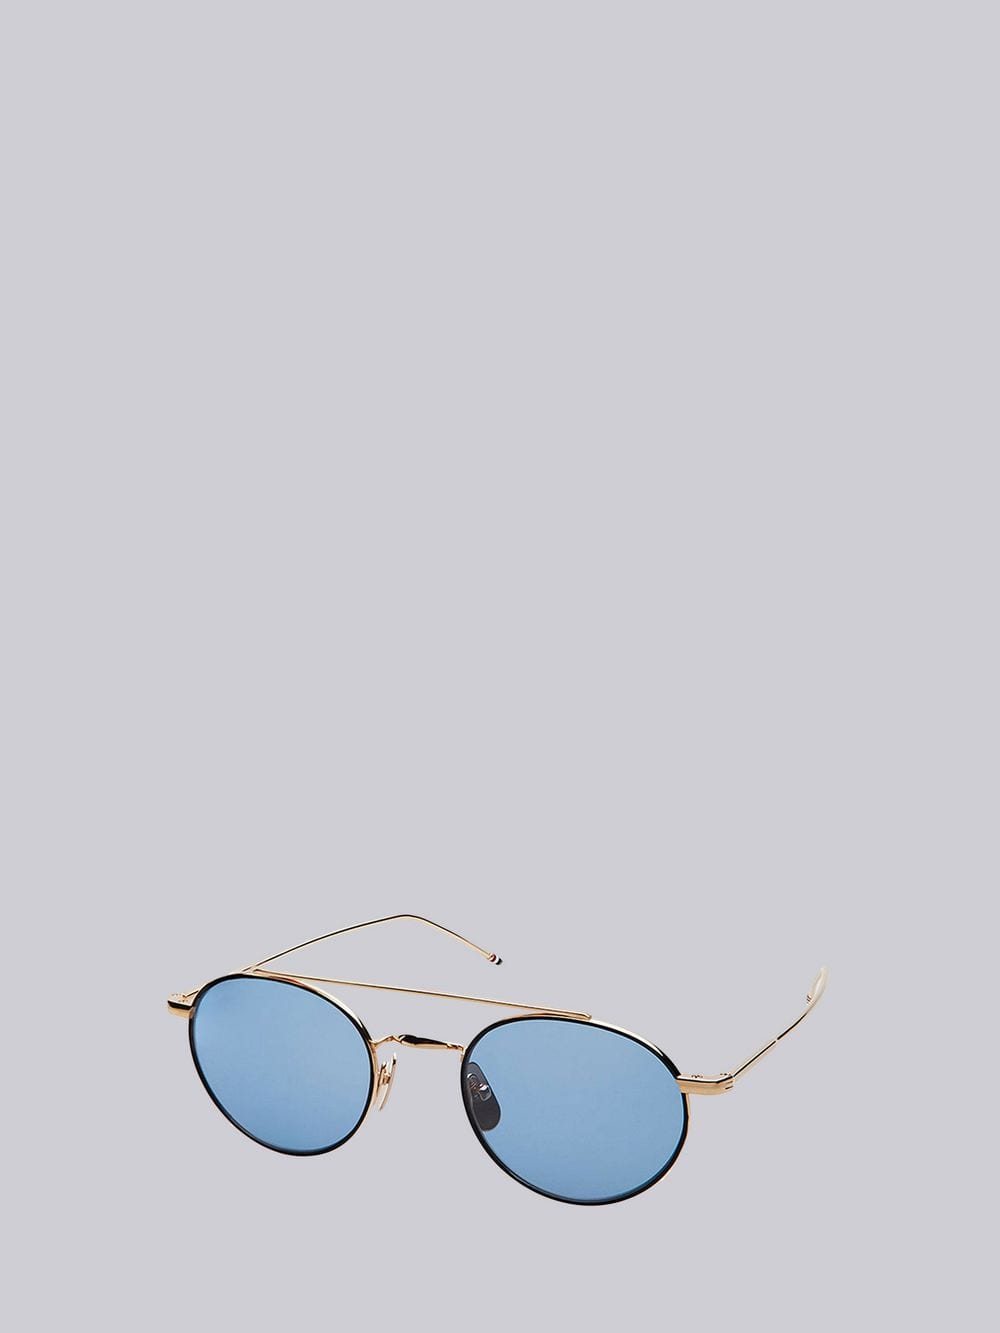 Black Iron & Gold Sunglasses.jpg